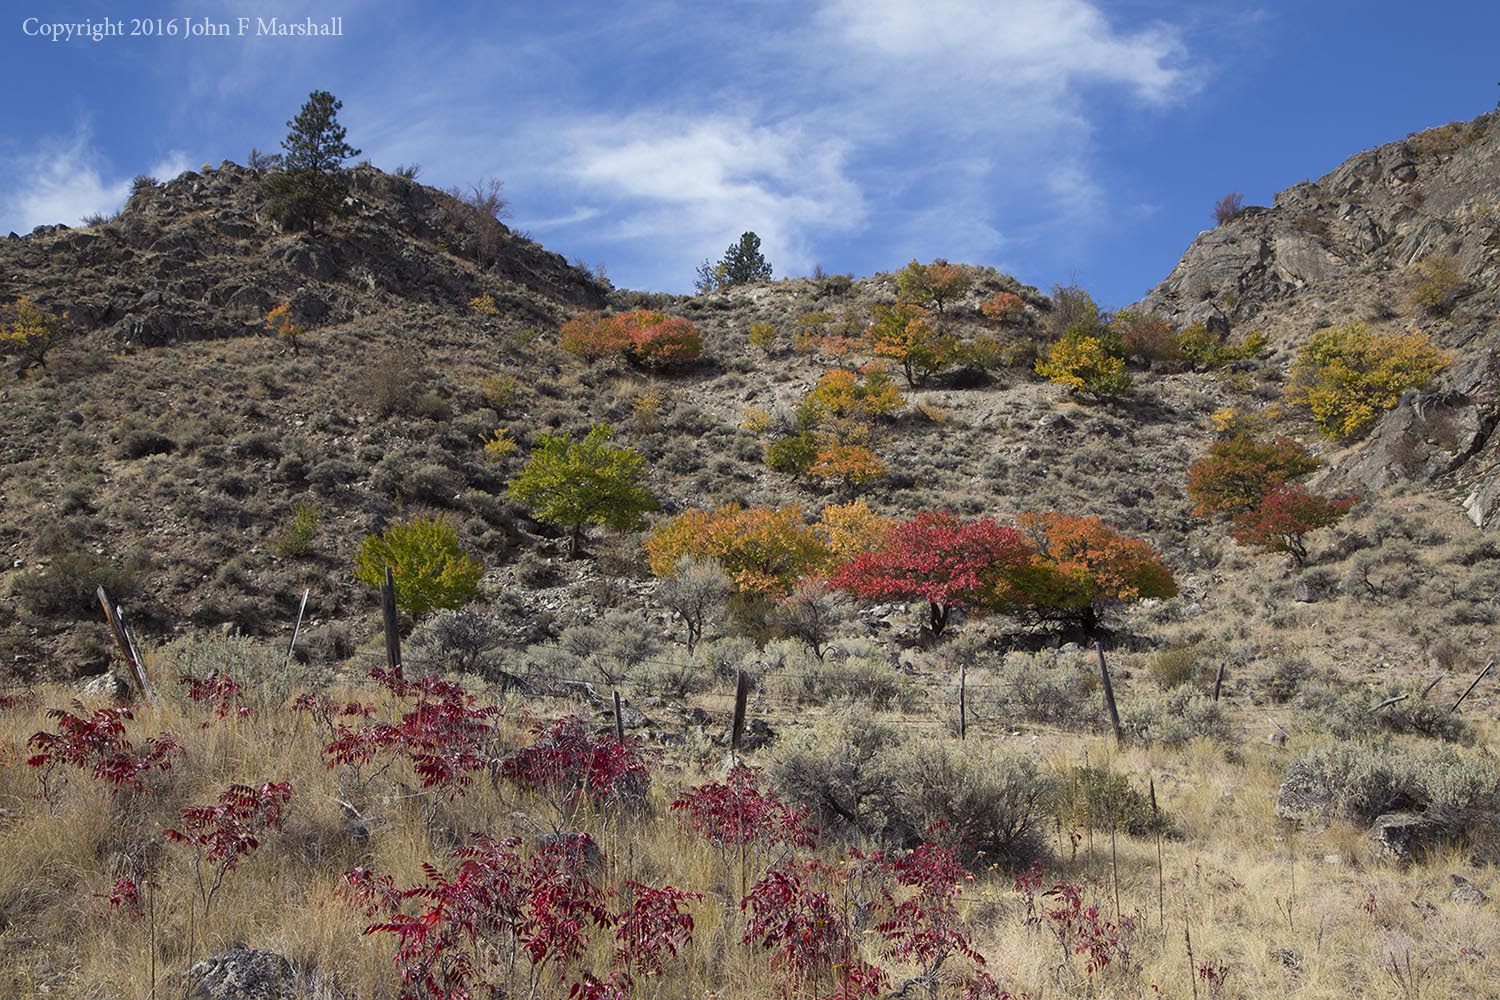 The apricot trees are scattered along a southeast facing slope for a mile.  The red plant in the foreground is smooth sumac,  Rhus glabra , a native.